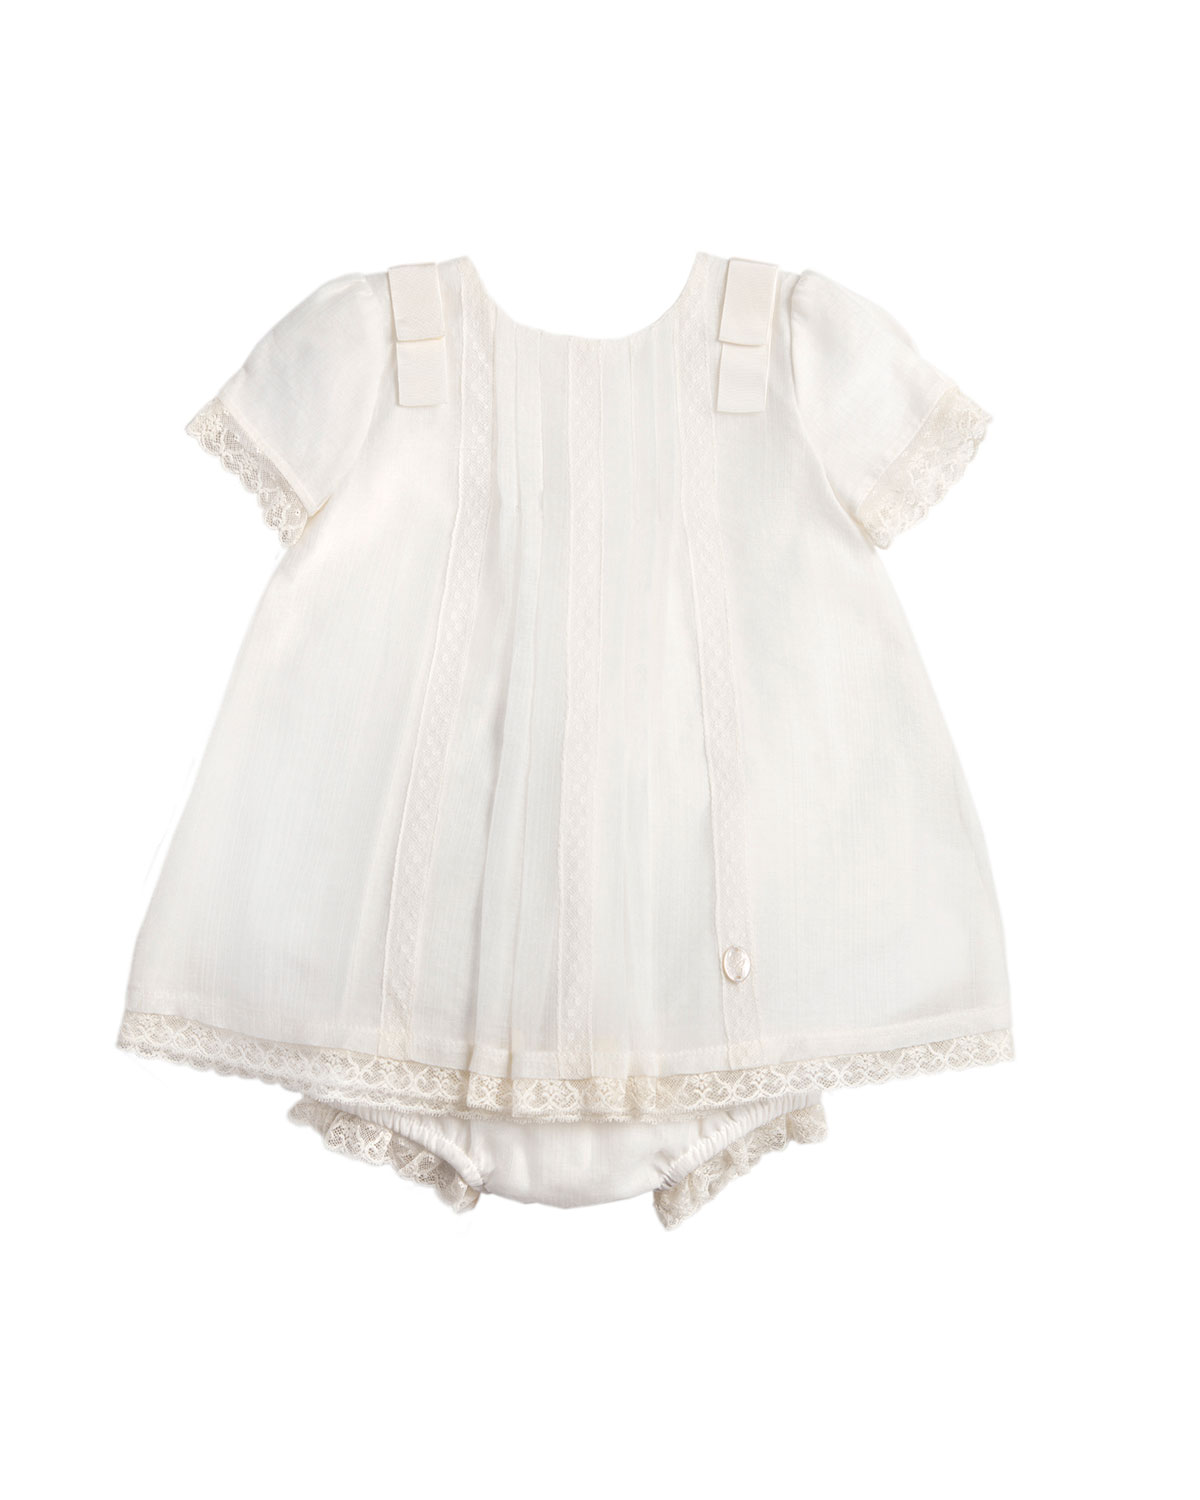 Short-Sleeve Lace-Trim Dress w/ Bloomers, White, Size 3-18 Months